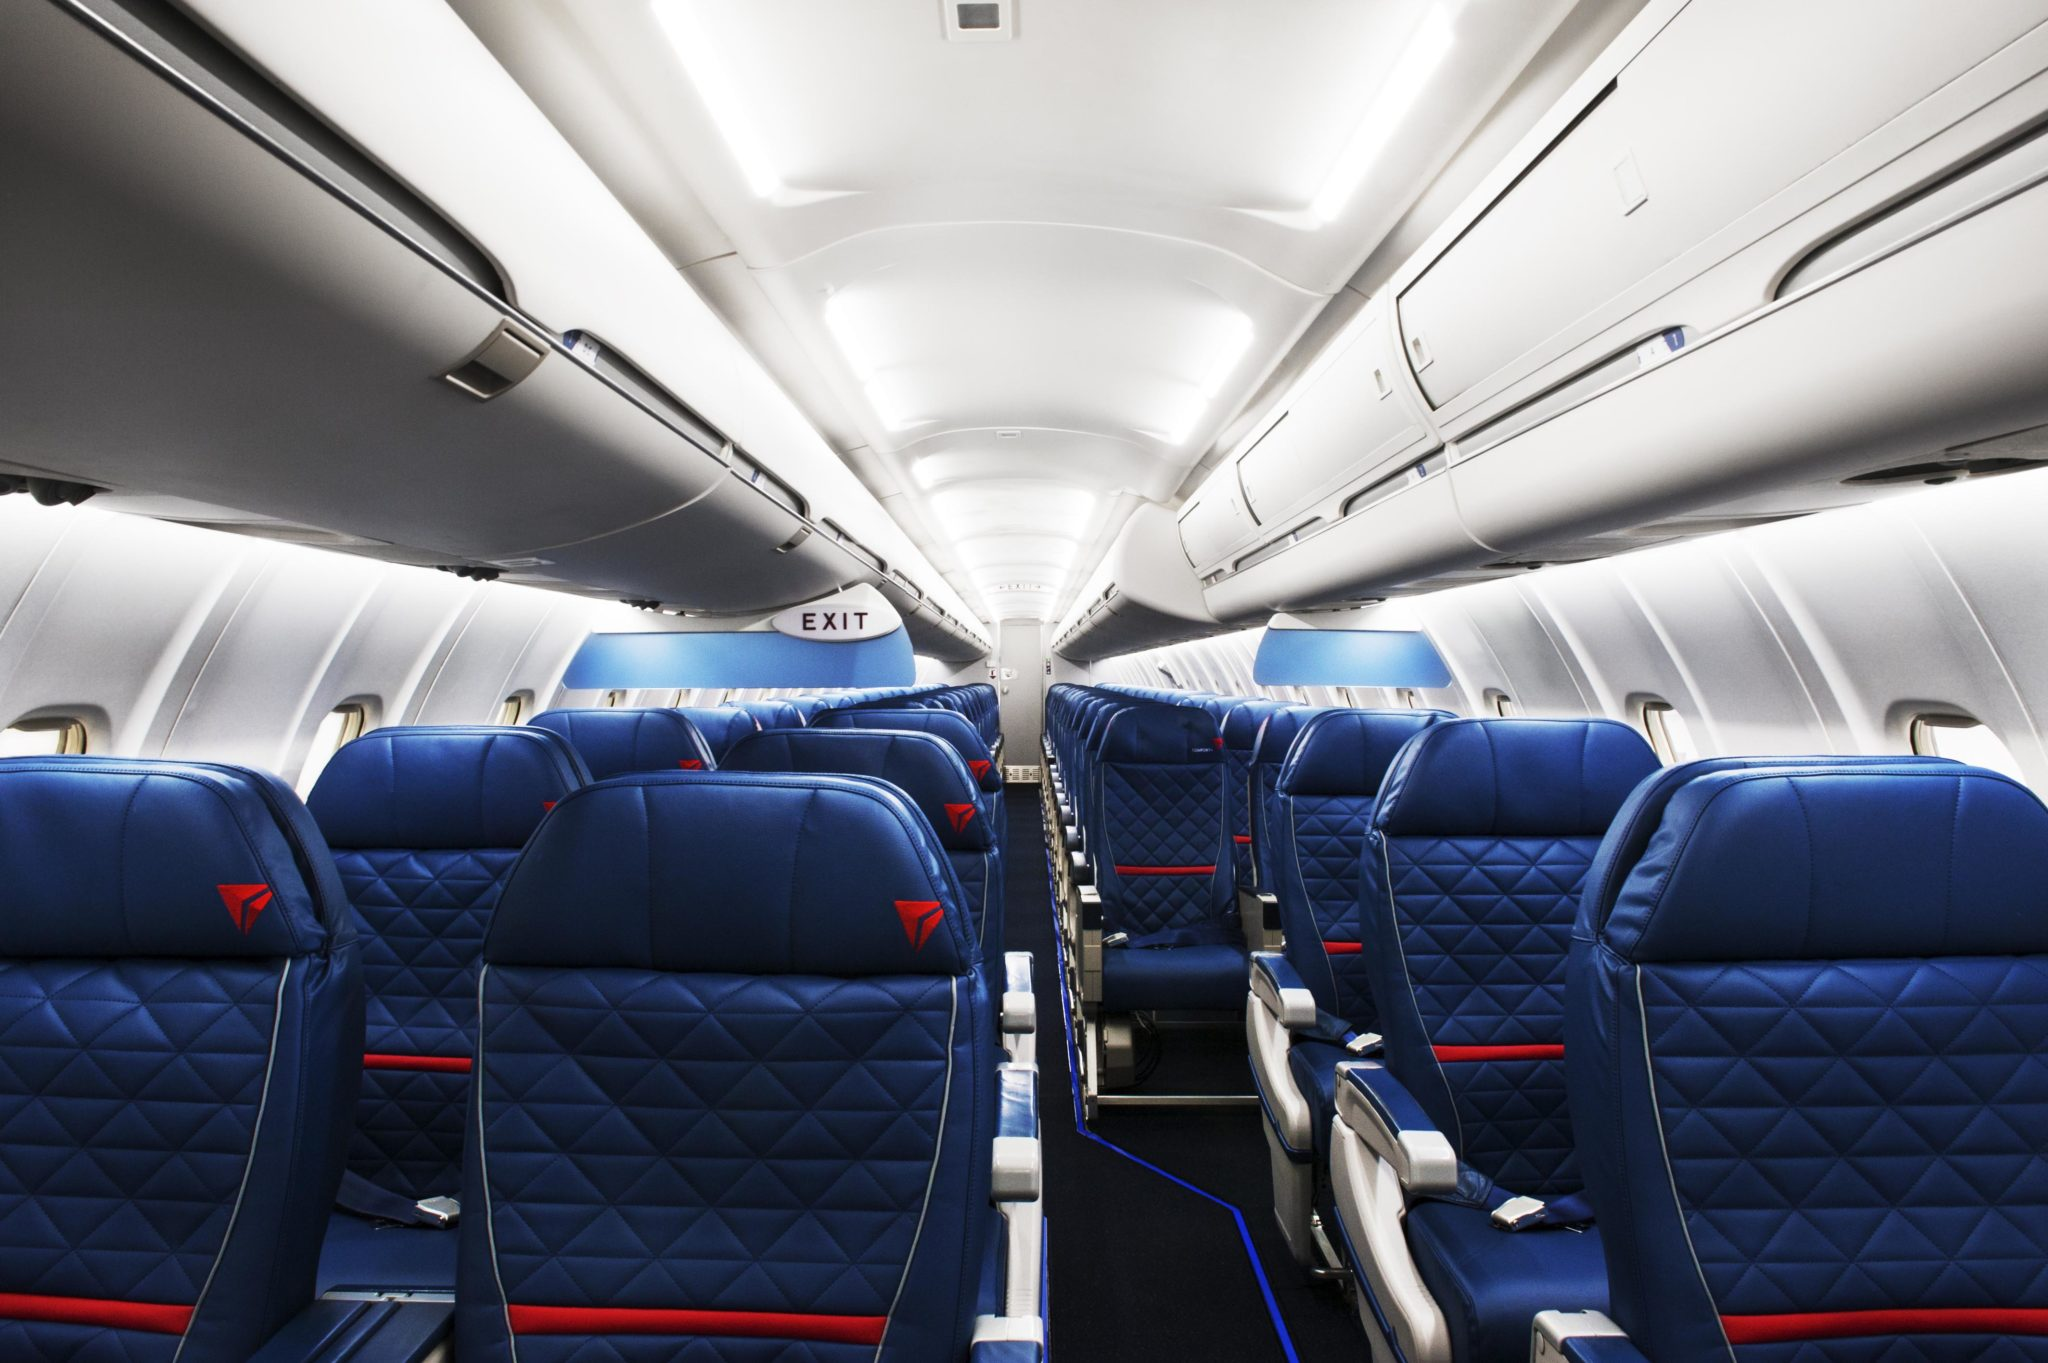 Regional Airlines Up Their Game To Meet Customer Expectations